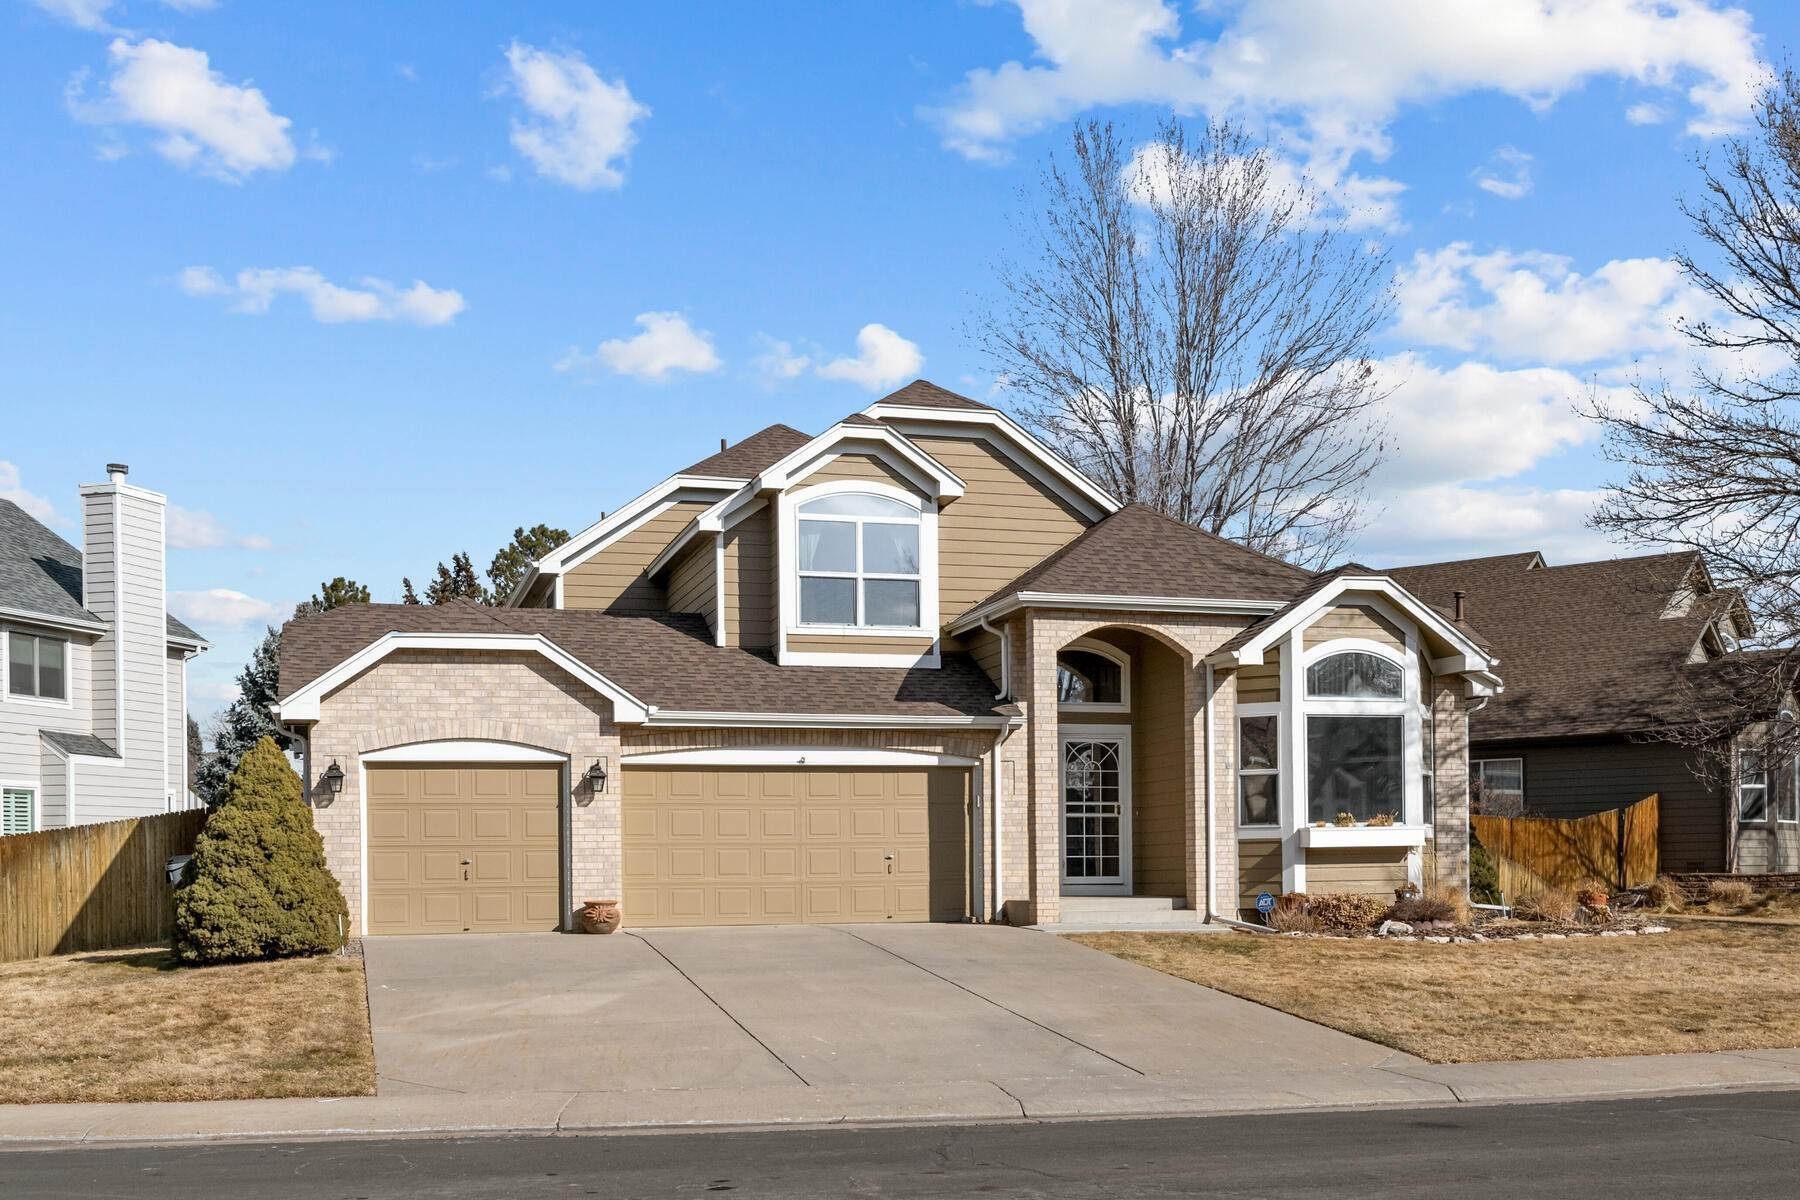 Single Family Homes at 13883 E Hampden Place, Aurora, CO, 80014 13883 E Hampden Place Aurora, Colorado 80014 United States